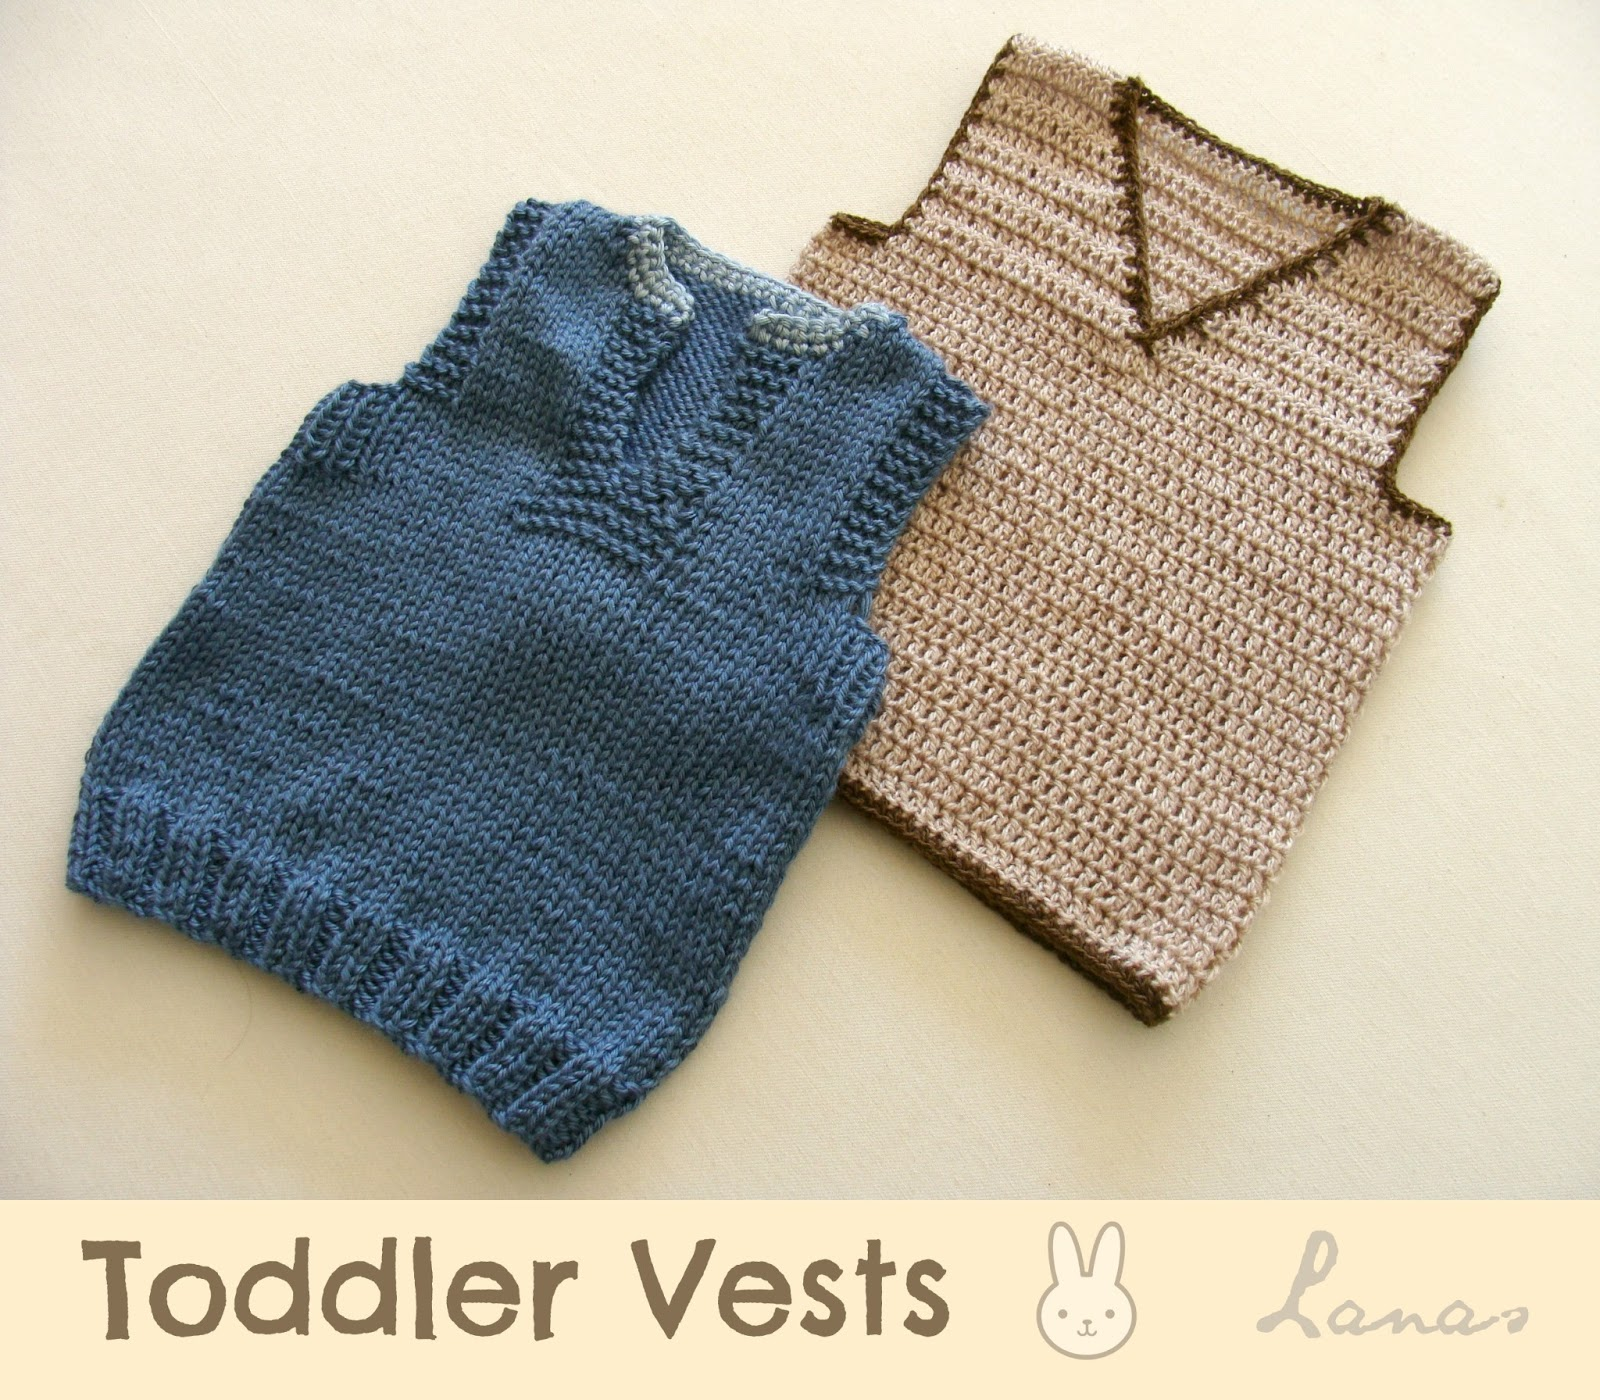 Knitting Patterns For Toddlers Vest : Lanas de Ana: Baby: 2 Vests